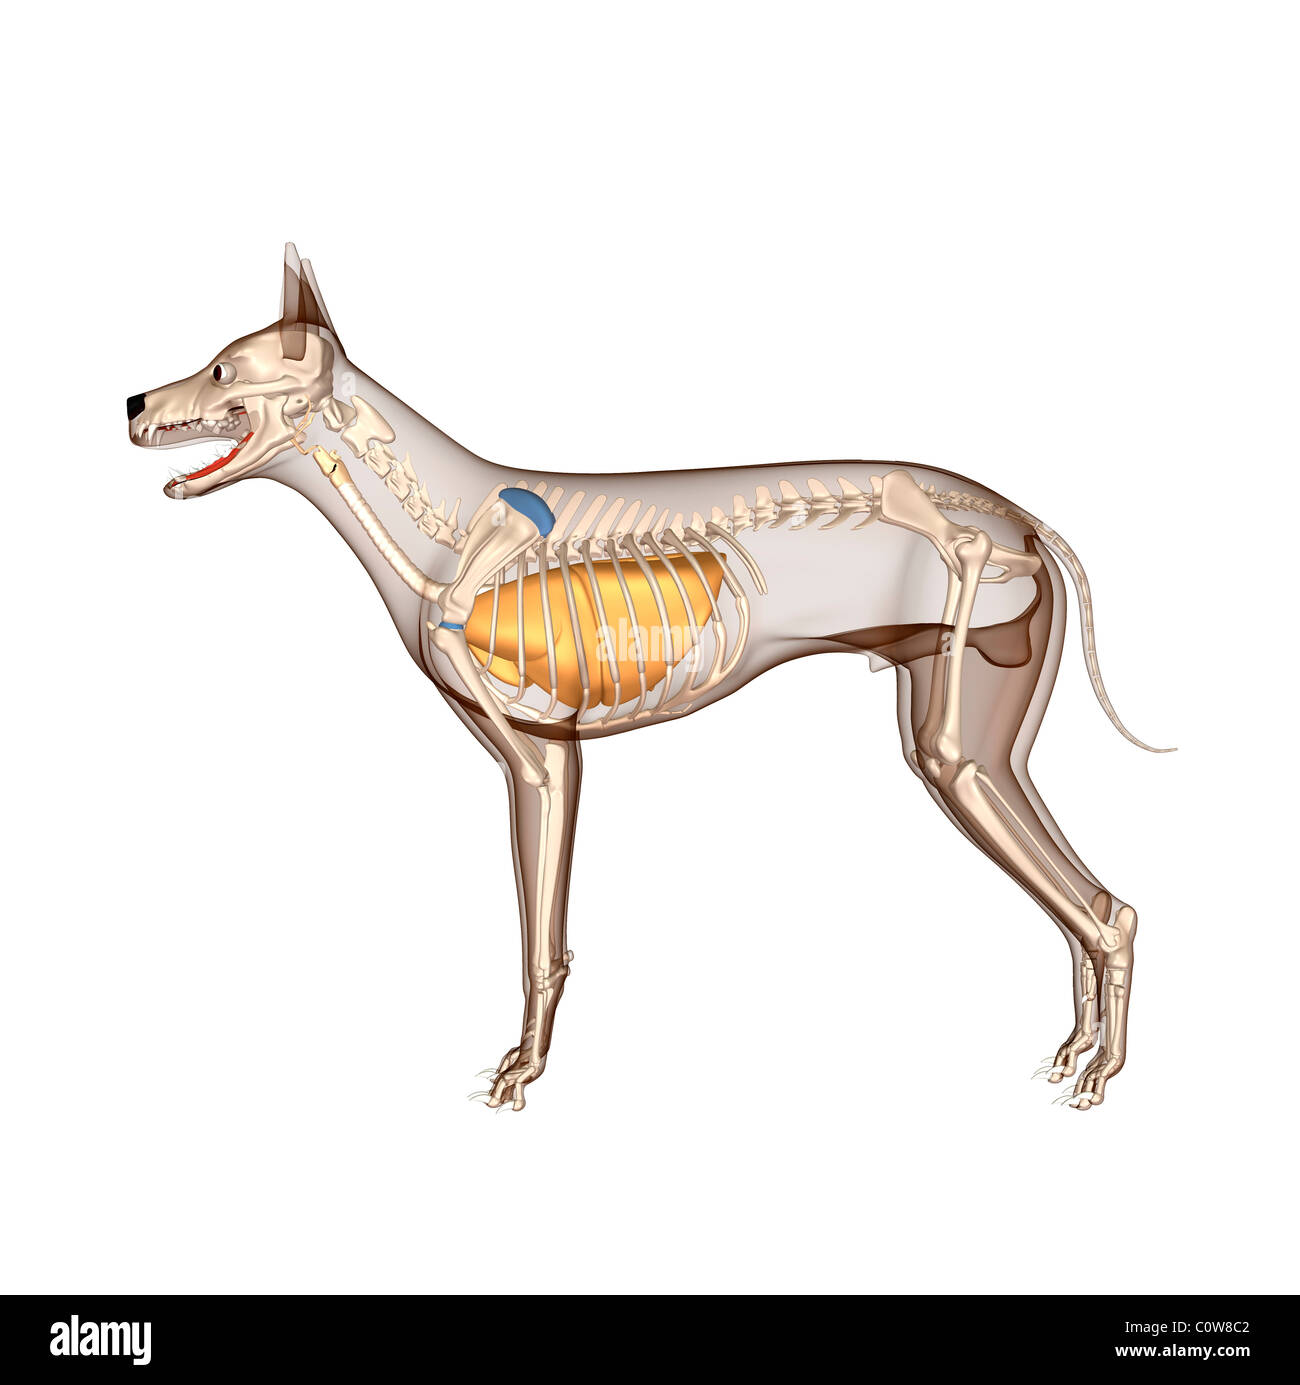 Dog Skeleton Canis Lupus Familiaris Stock Photos & Dog Skeleton ...